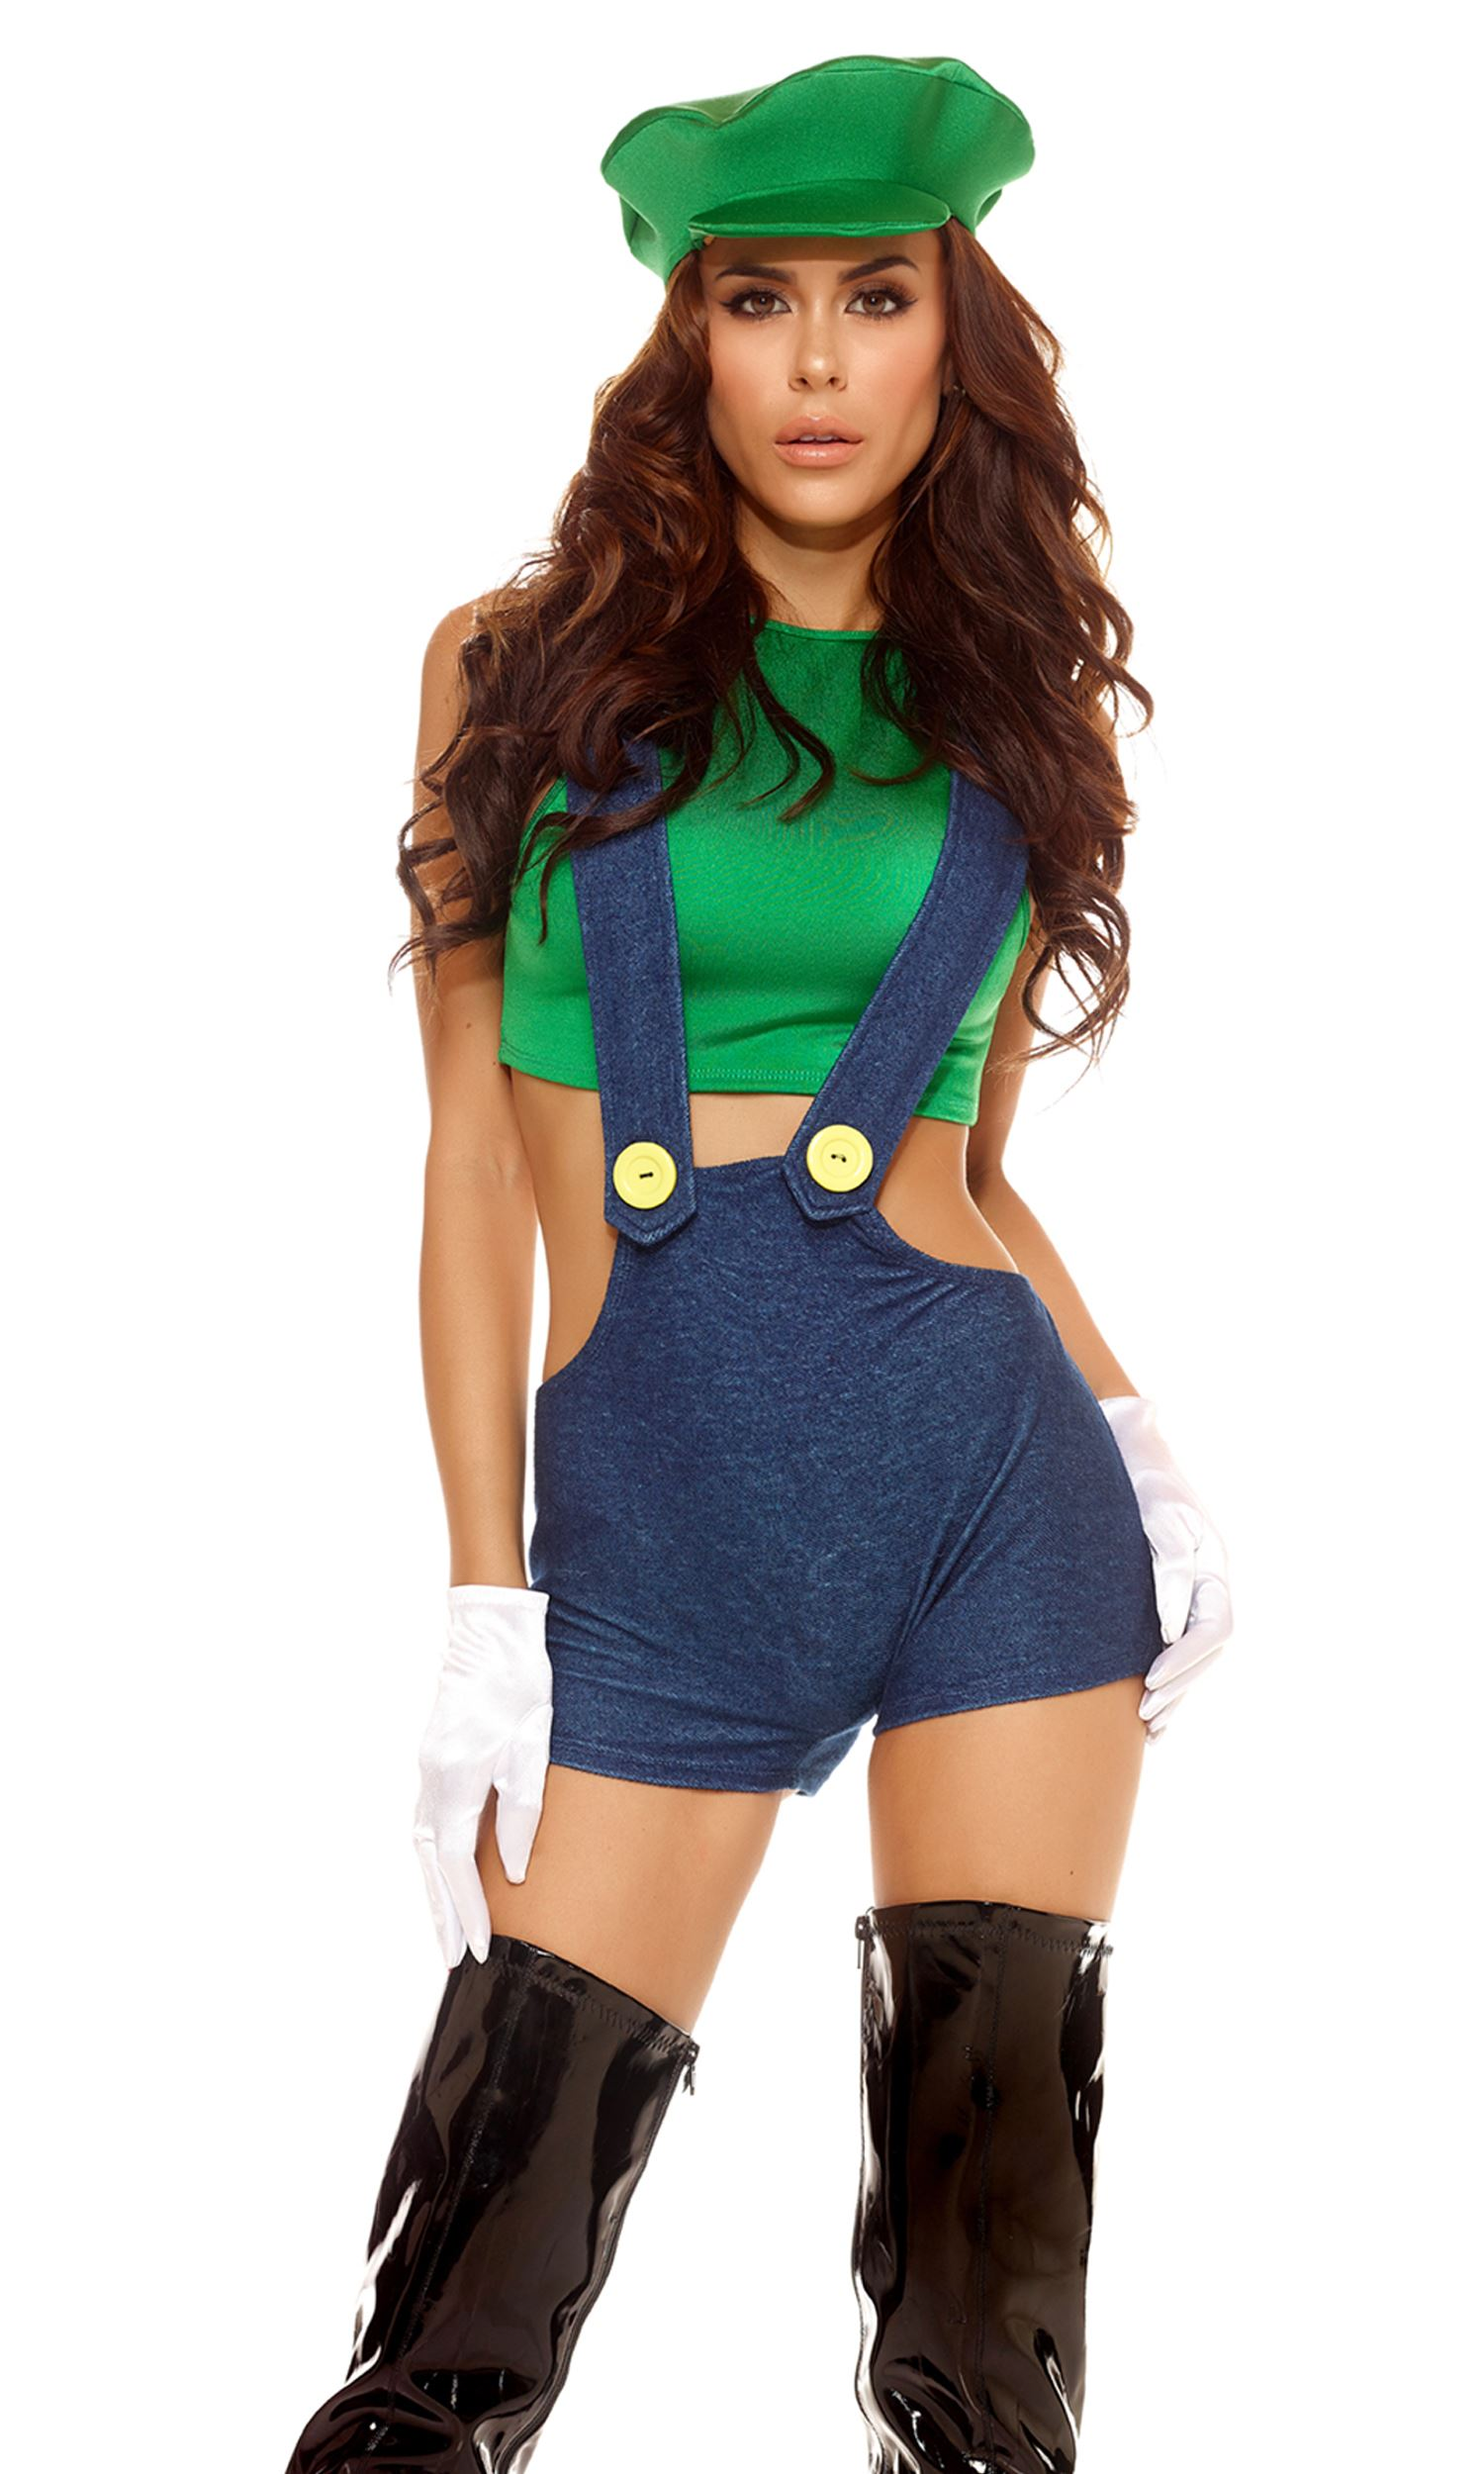 Adult Game Over Video Game Costume ...  sc 1 st  The Costume Land & Adult Game Over Video Game Costume | $59.99 | The Costume Land